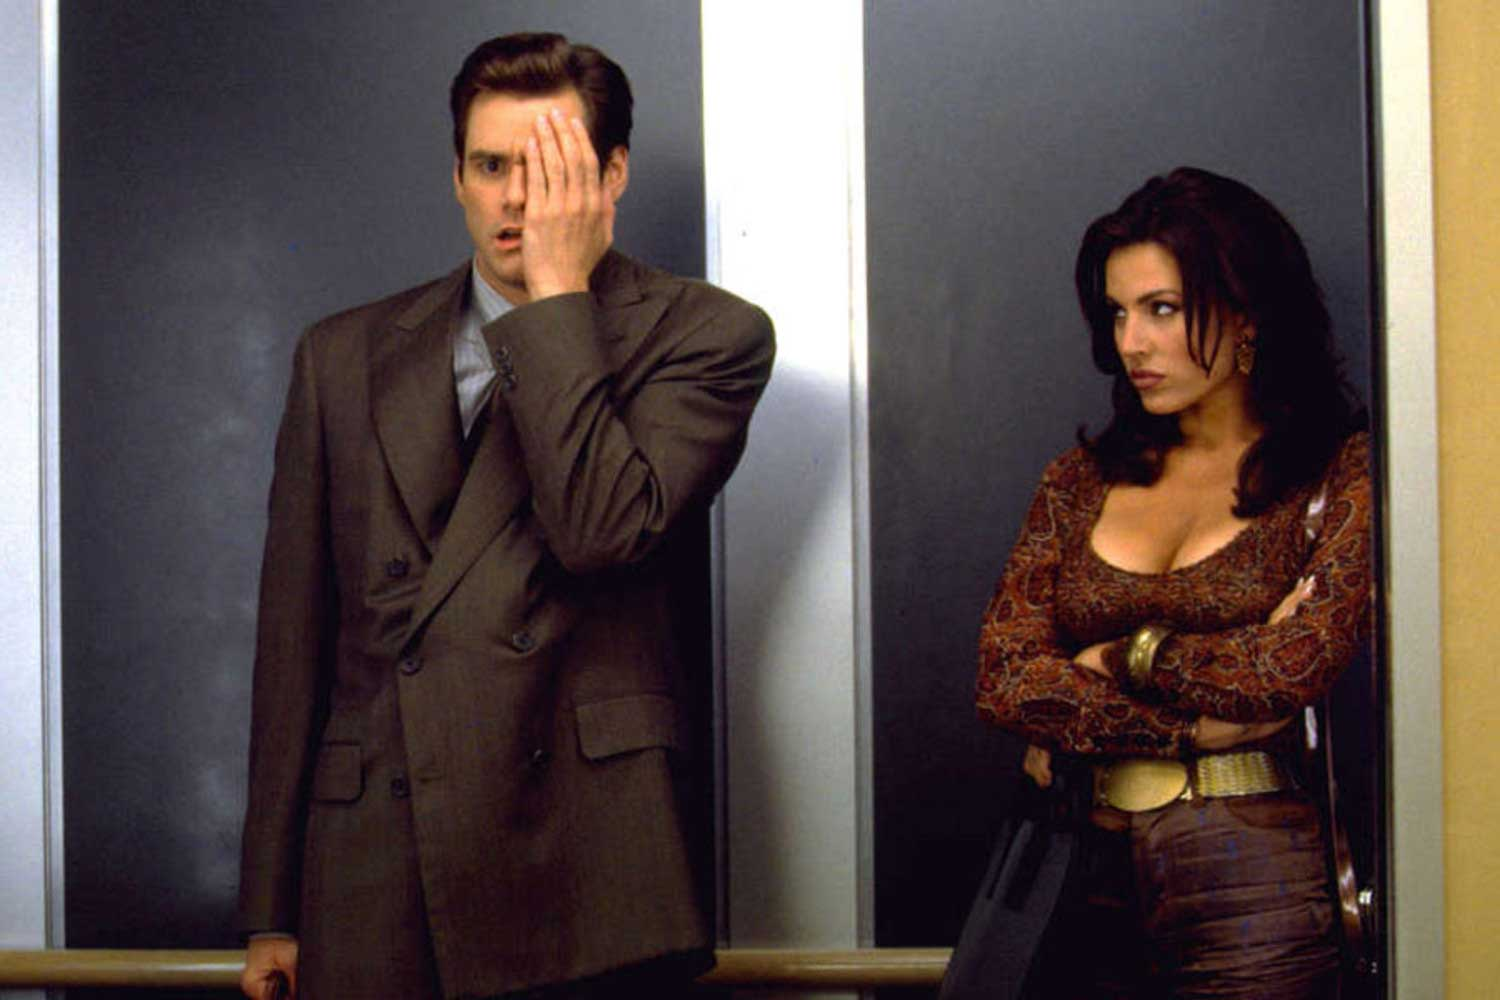 <strong>Liar Liar</strong>                                    A compulsive liar (Carrey) is forced to tell the truth following his son's magical wish.